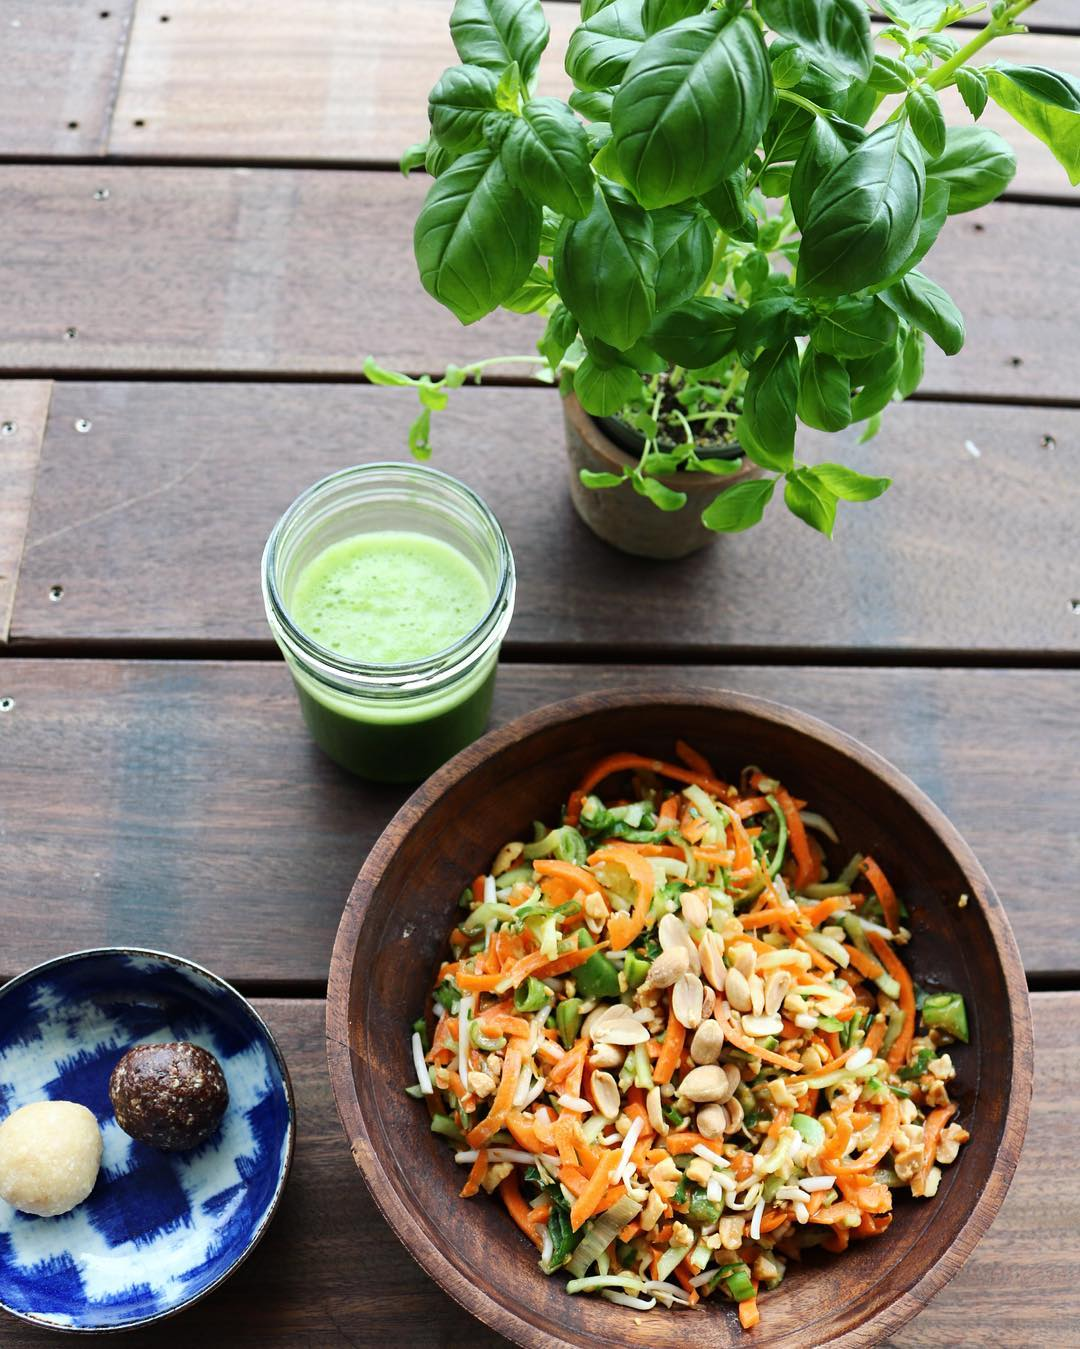 VEGAN + RAW PAD THAI AND GREEN JUICE ???????? #raw #vegan #whatveganseat #caroherentals #multibrand #fashionstore